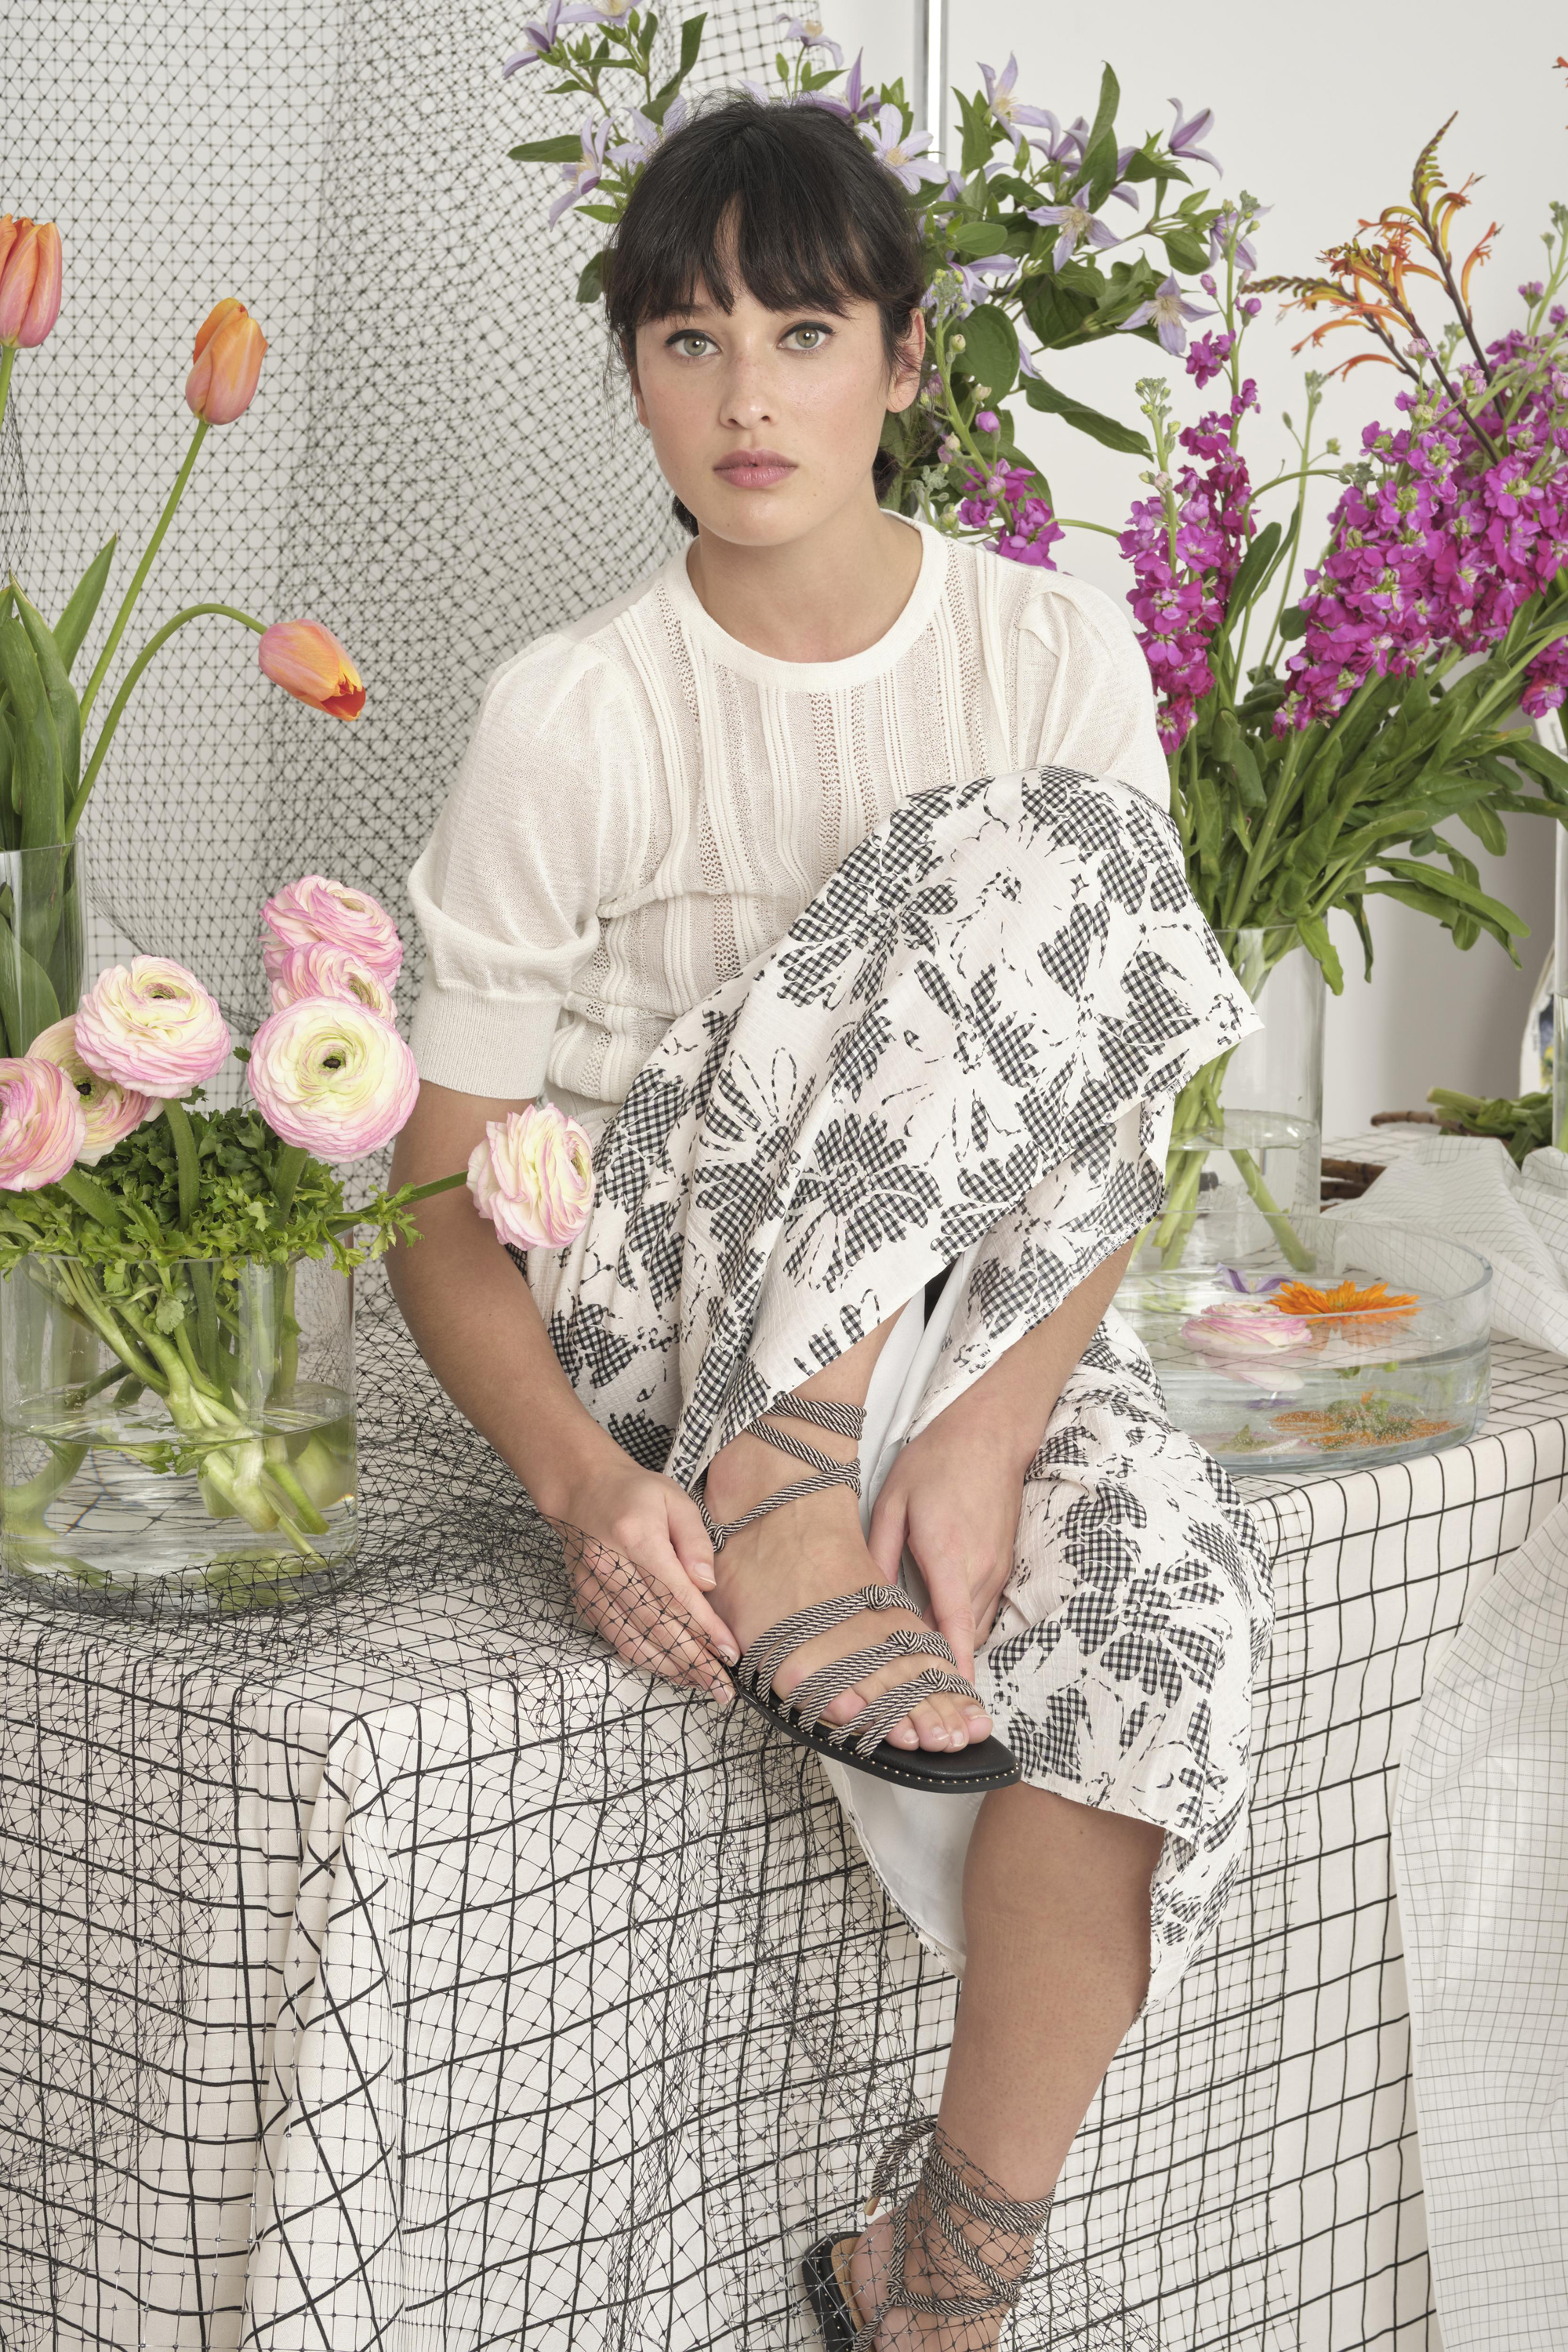 Oliver Bonas Stitched Stripe White Knitted Top; Mono Gingham & Floral Print Midi Skirt; Rope Tie Black & White Studded Sandals